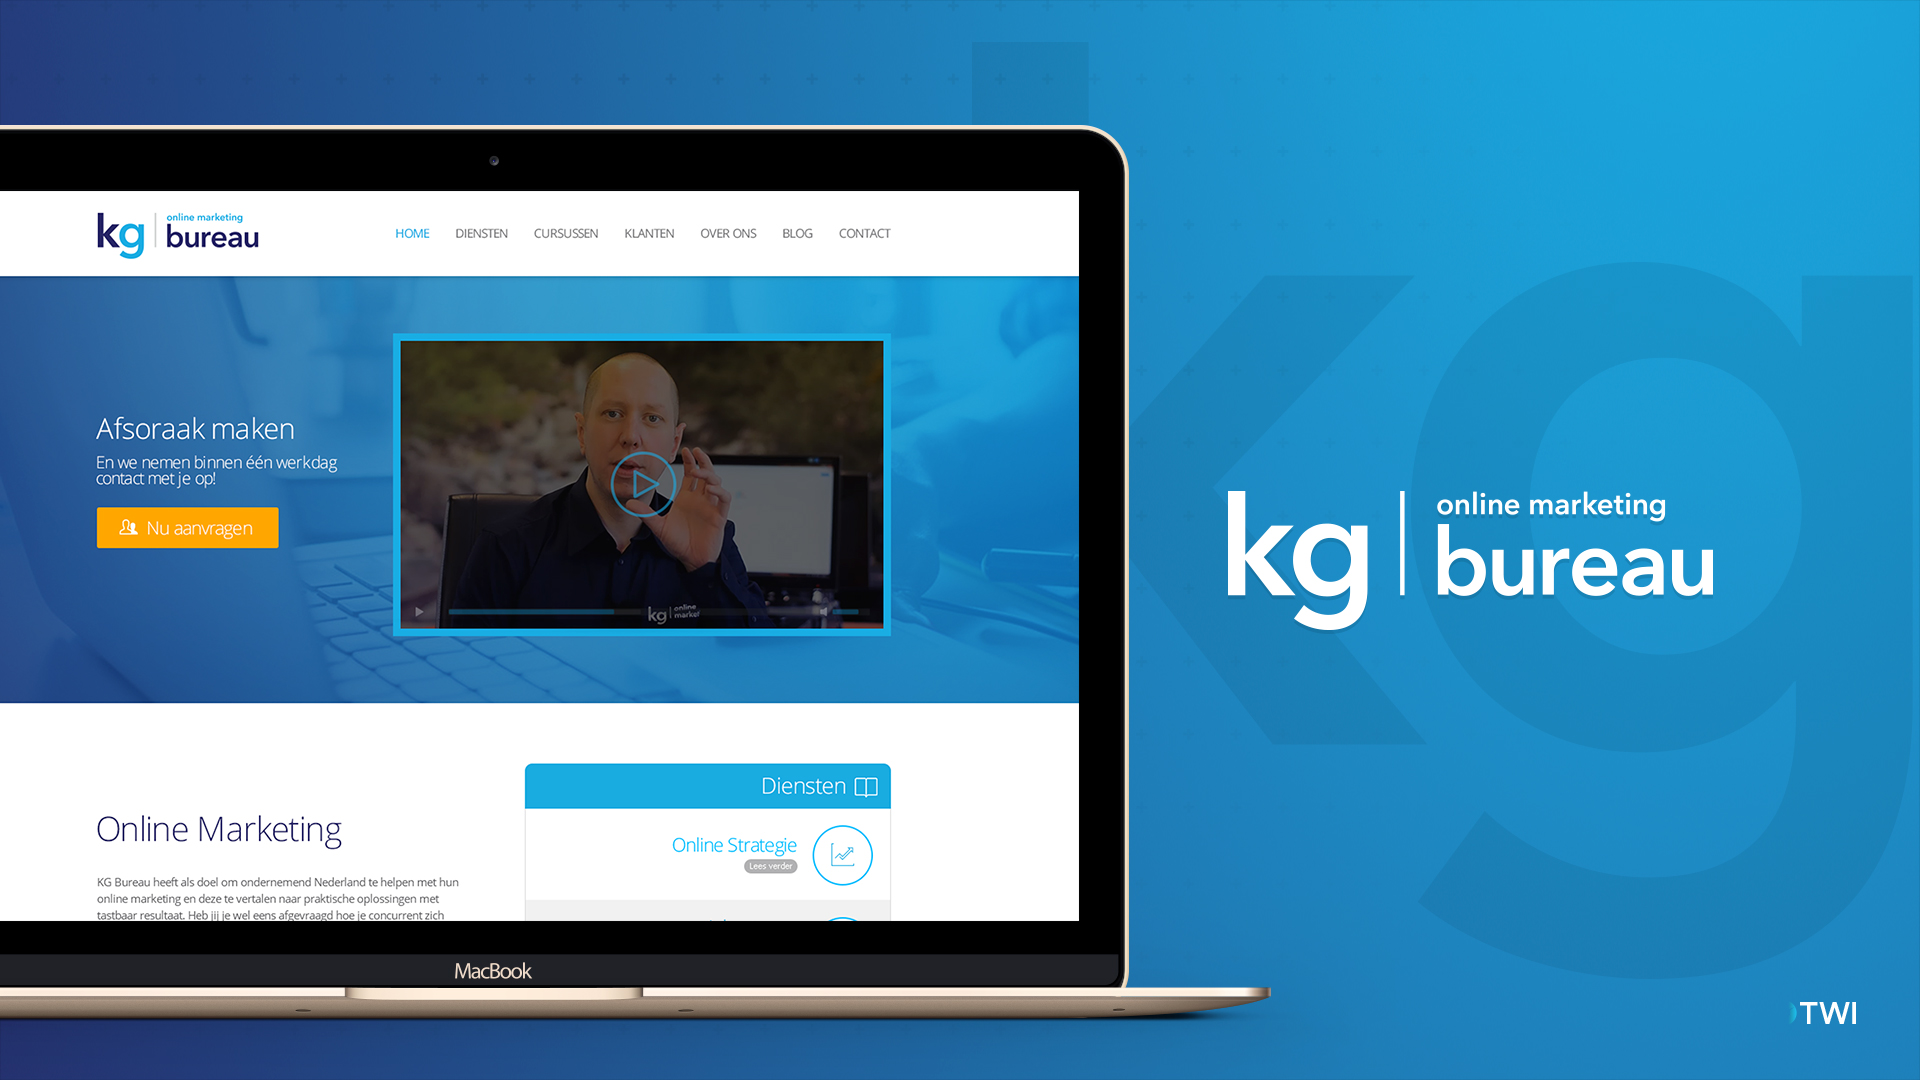 KG Online Marketing